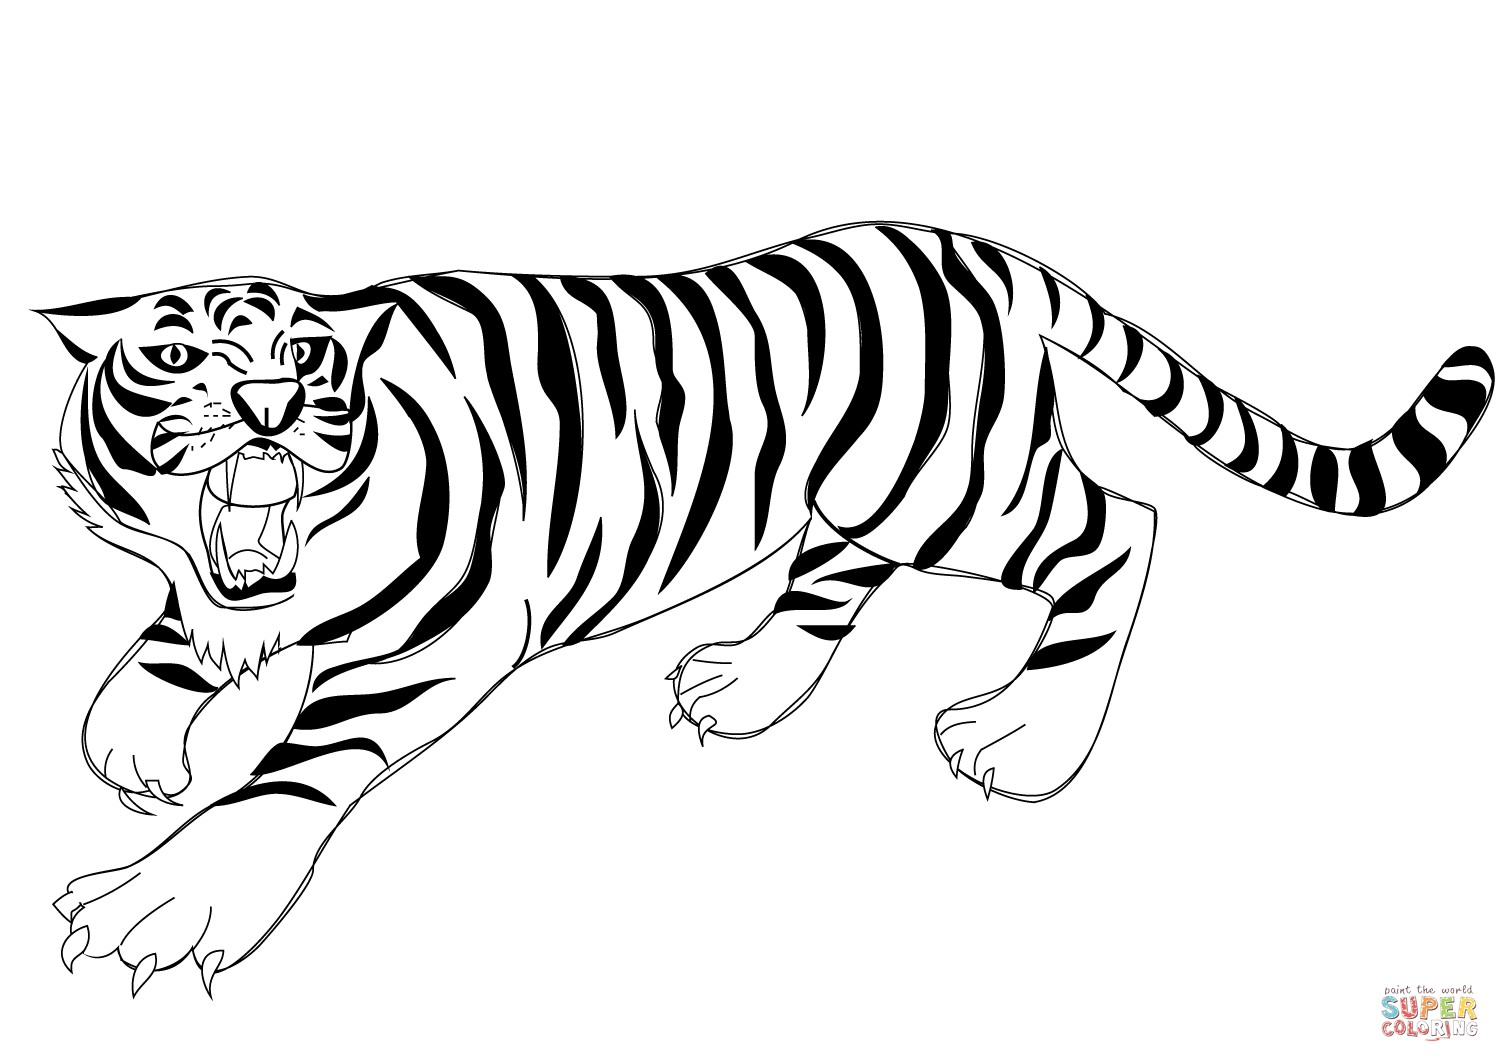 1500x1062 coloring pages printable tiger best of roaring tiger coloring page - Tiger Coloring